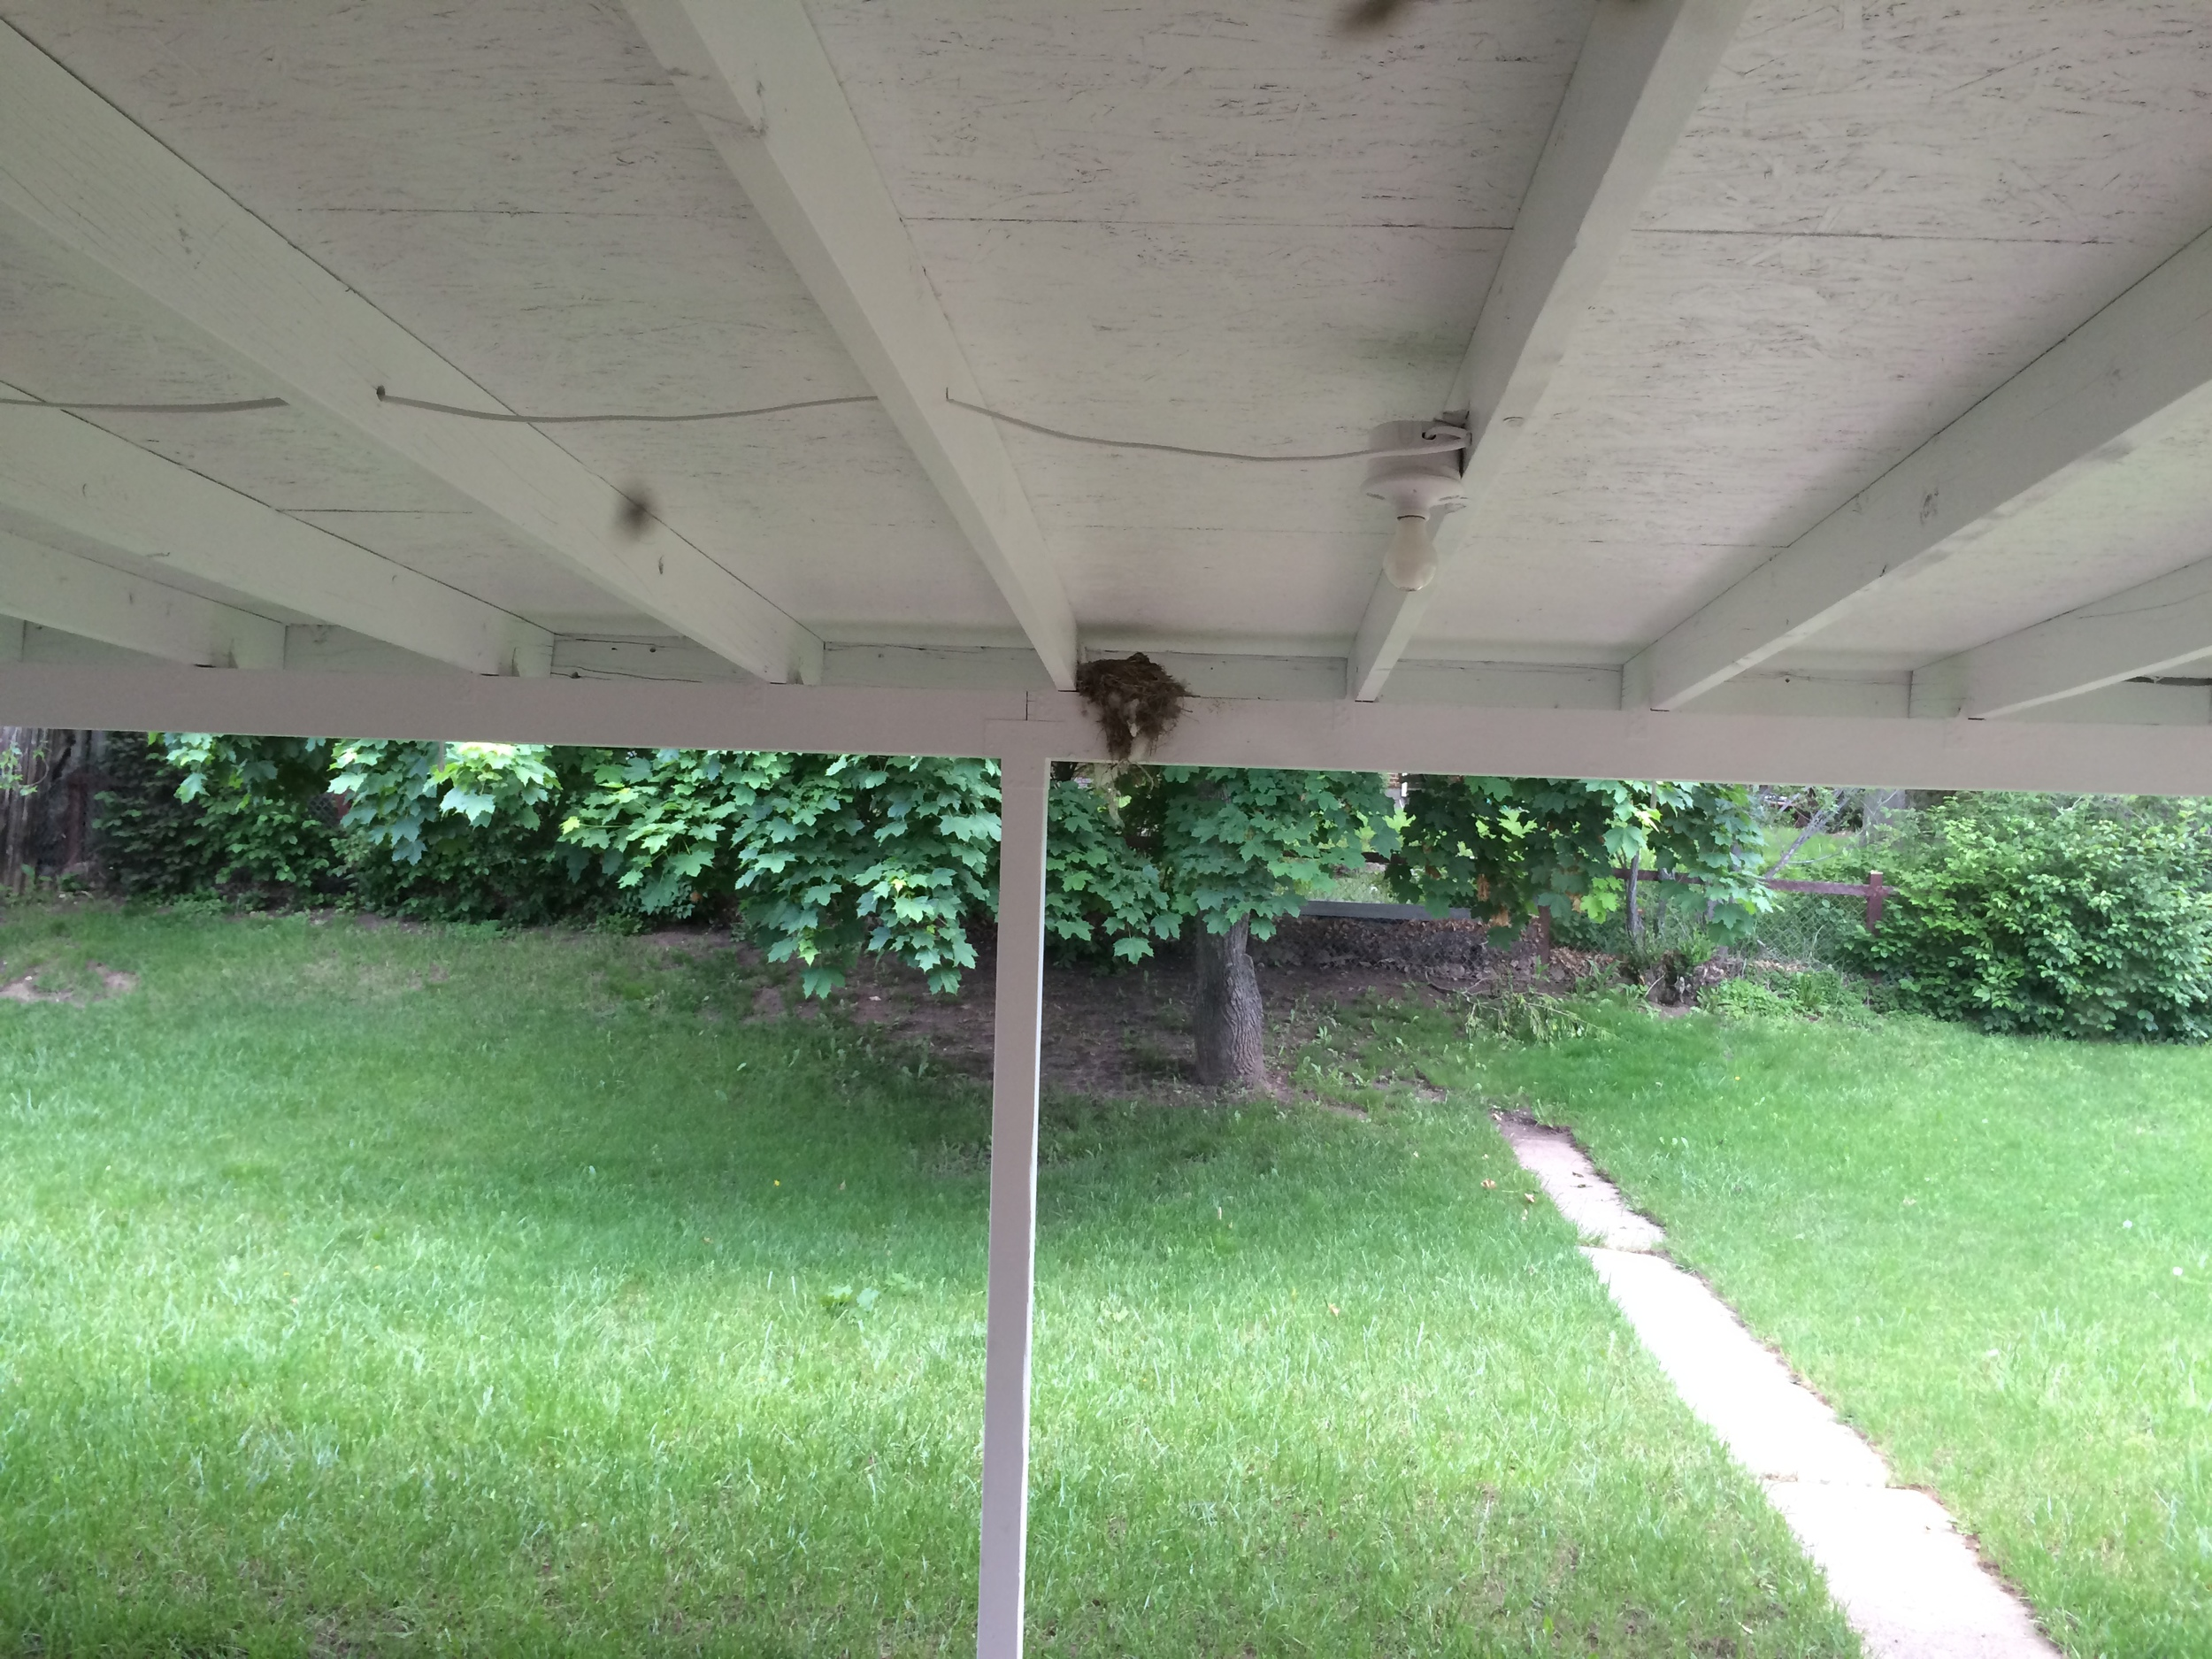 My new pet Robin babies, and a glimpse of where we'll have lots of summer fun :)